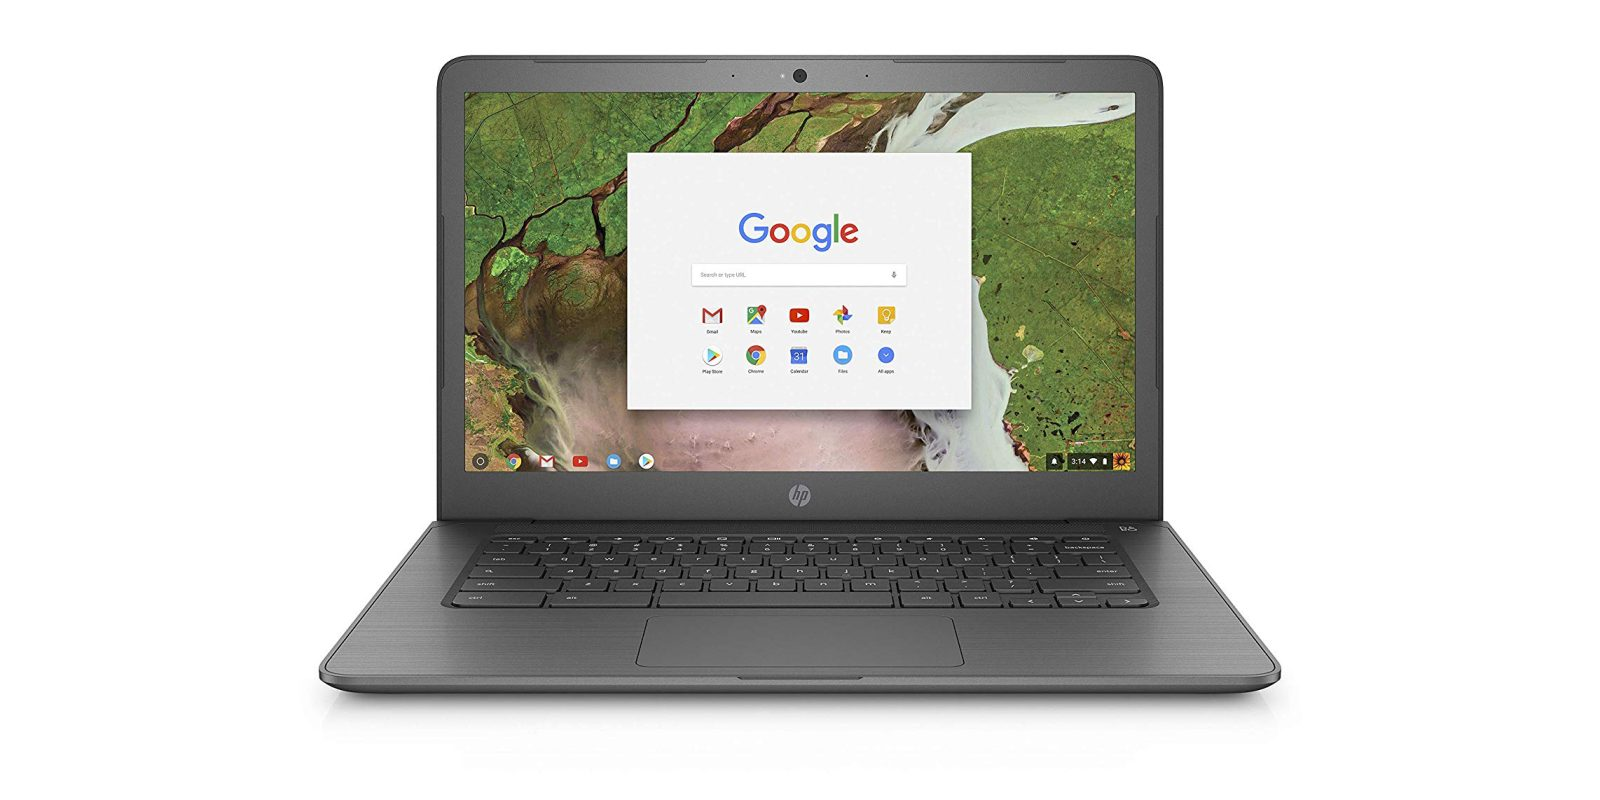 HP Chromebook 14 offers USB-C, ample storage, more for $185 (Cert. Refurb)